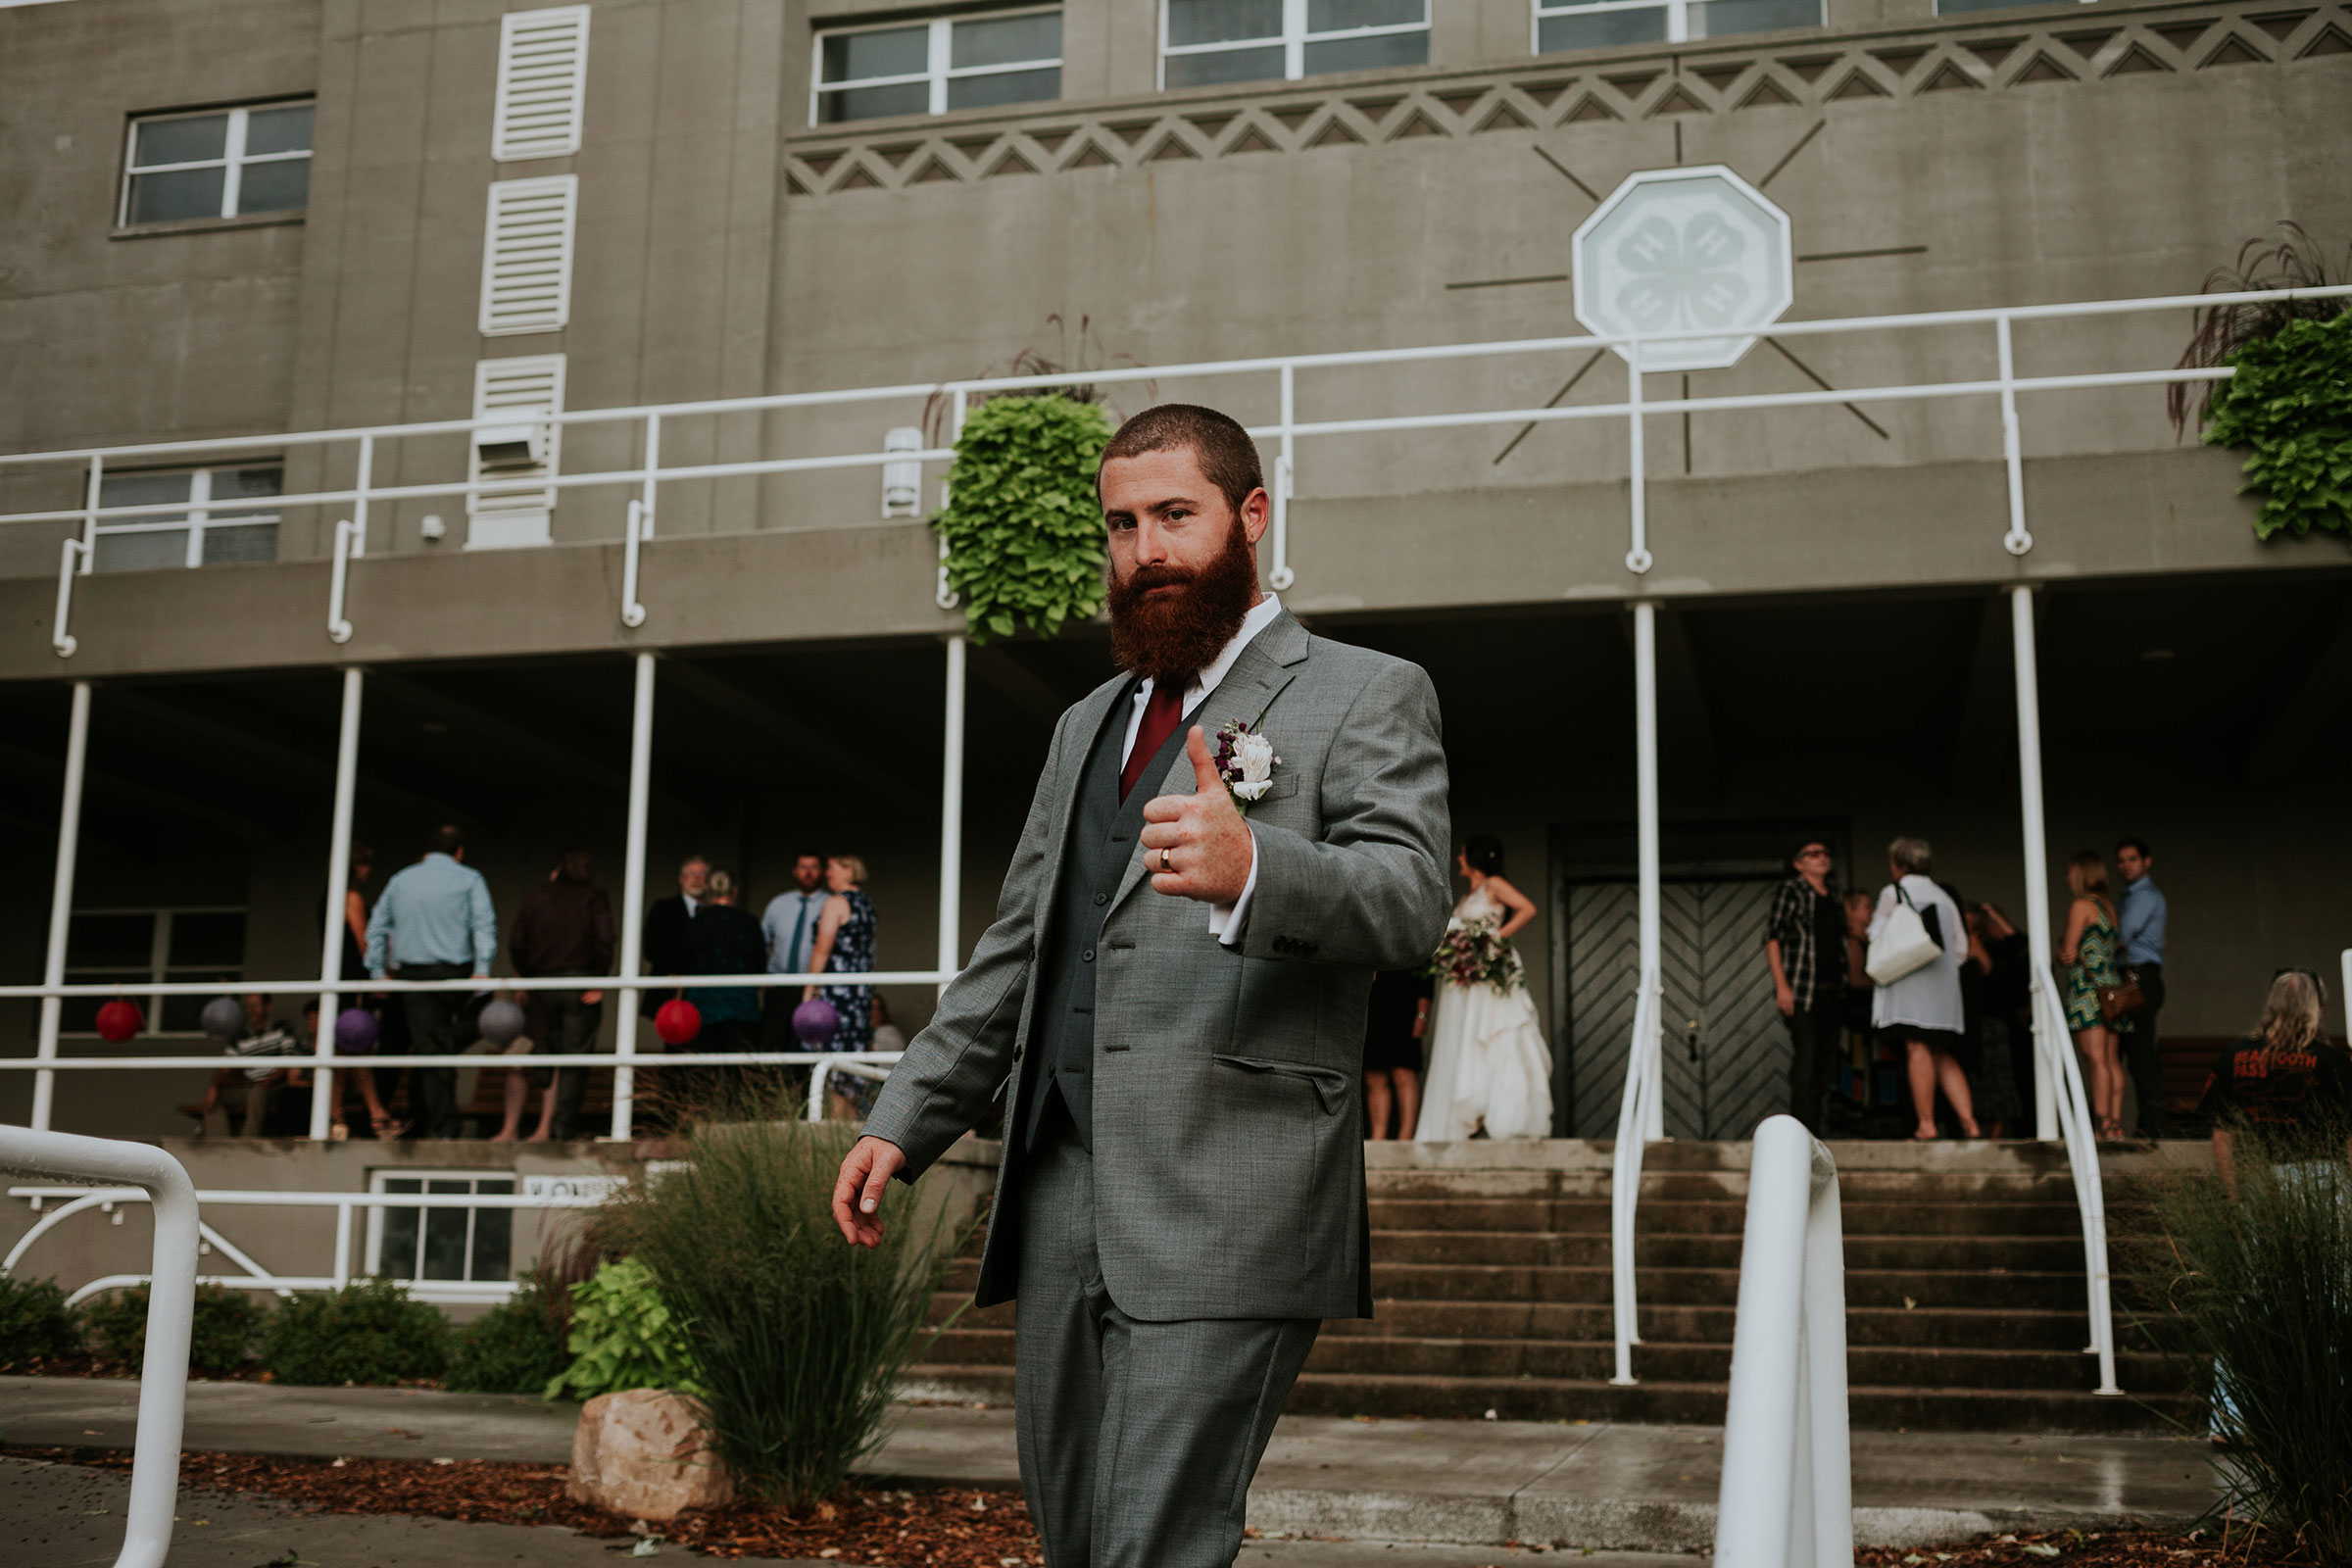 groom-thumbs-up-getting-on-party-bus-iowa-state-fairgrounds-desmoines-iowa-raelyn-ramey-photography.jpg